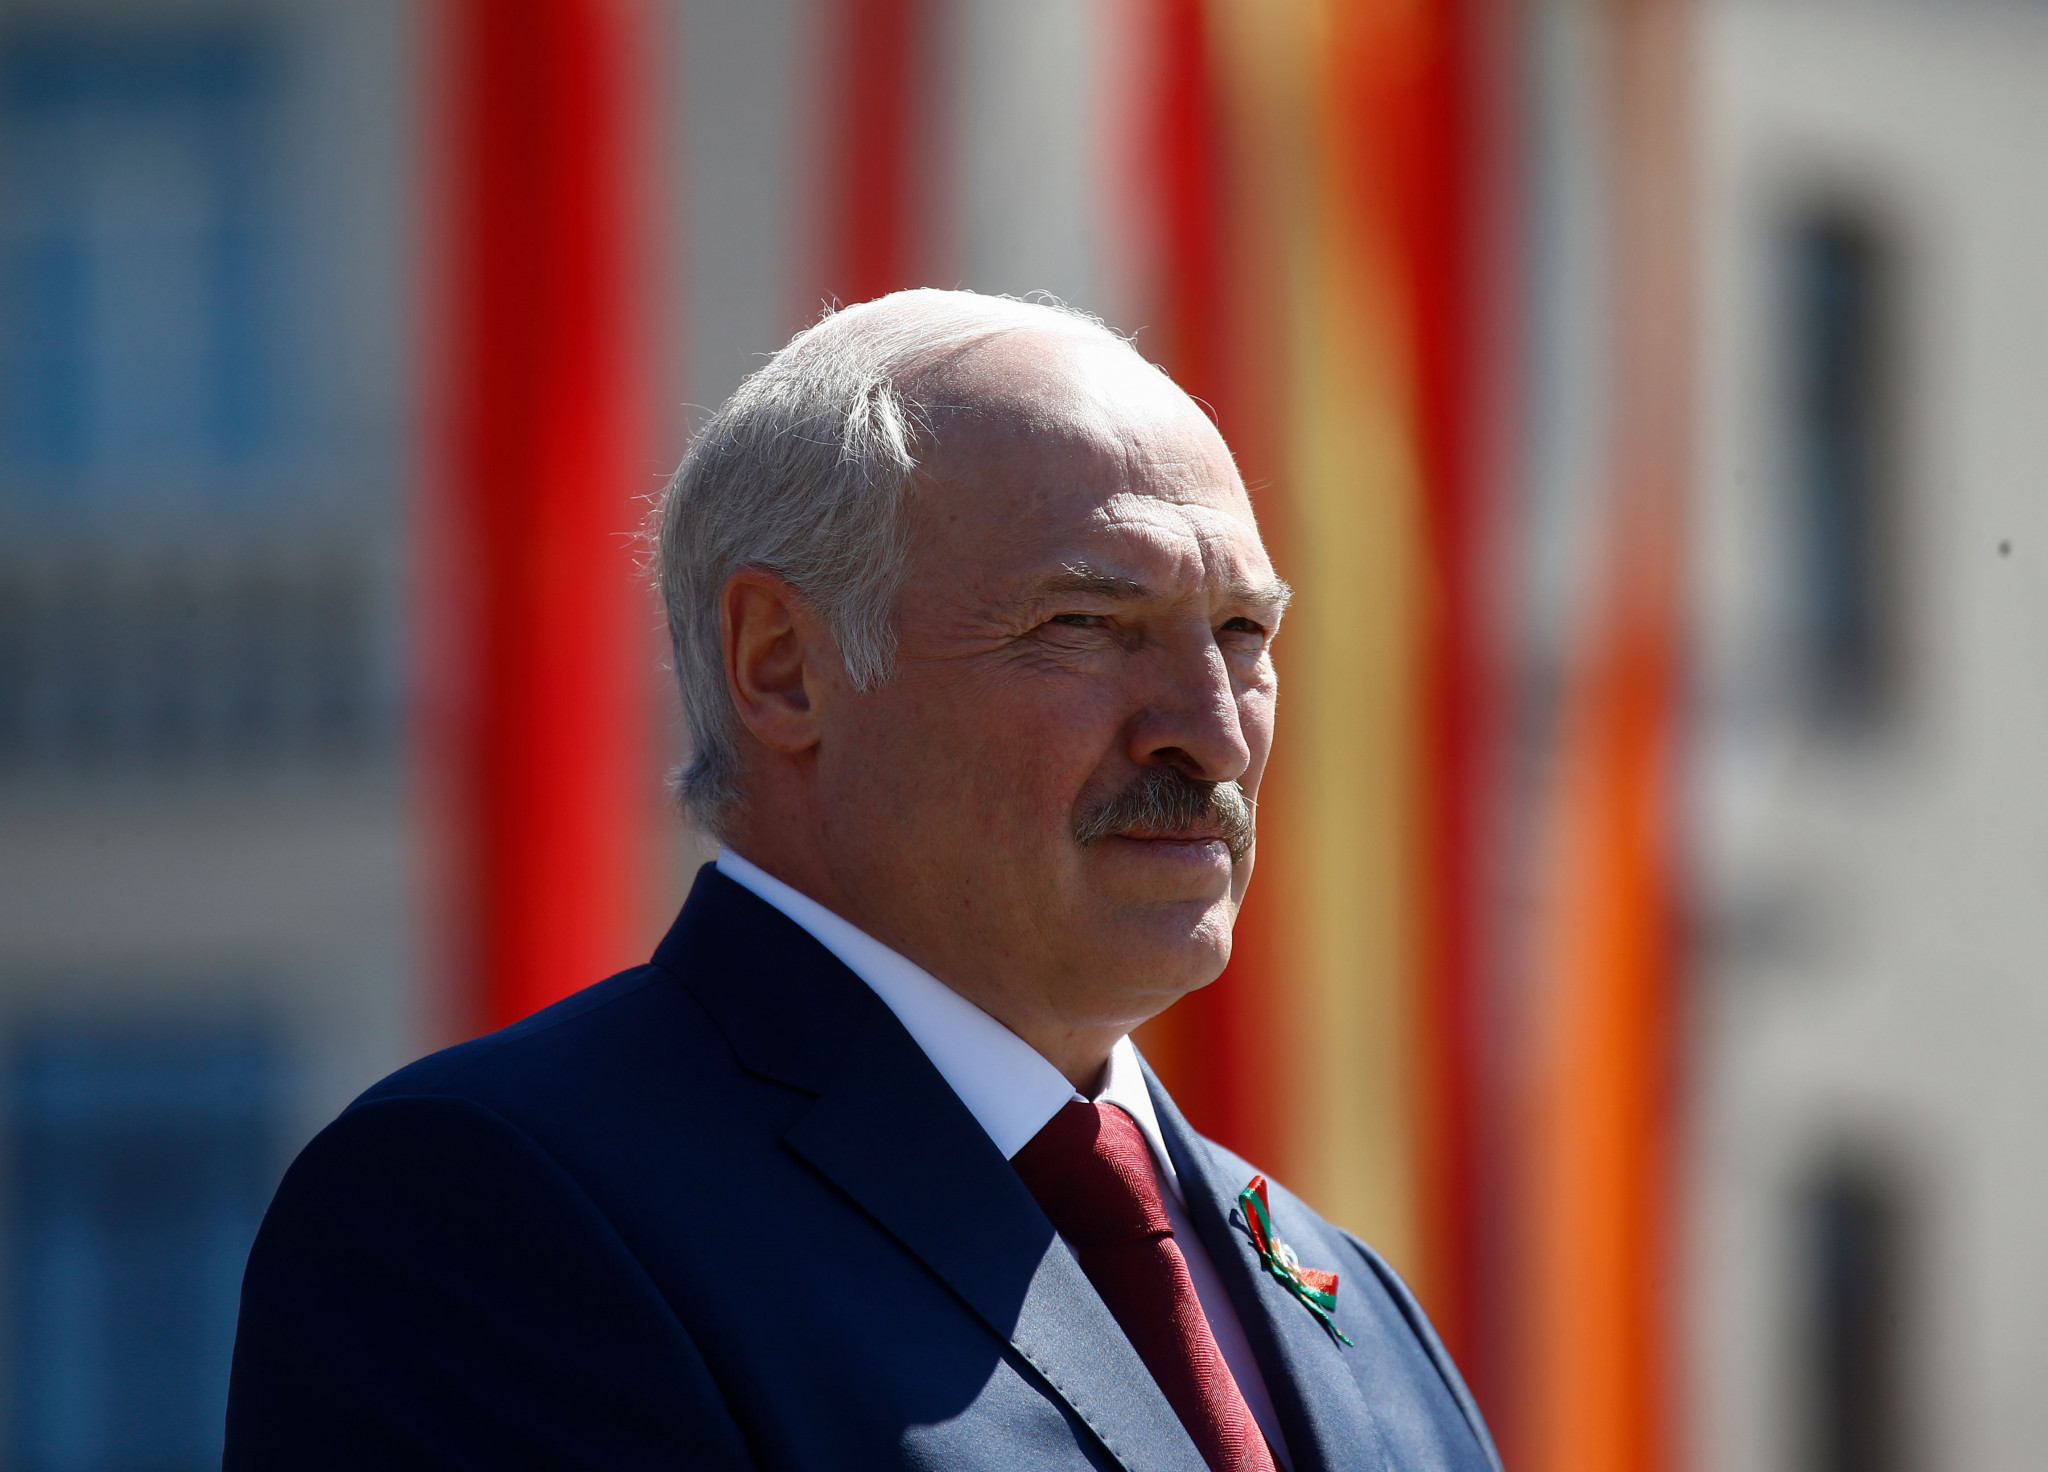 Belarus President Alexander Lukashenko has invited foreign leaders to his country for next year's Minsk 2019 European Games ©Getty Images